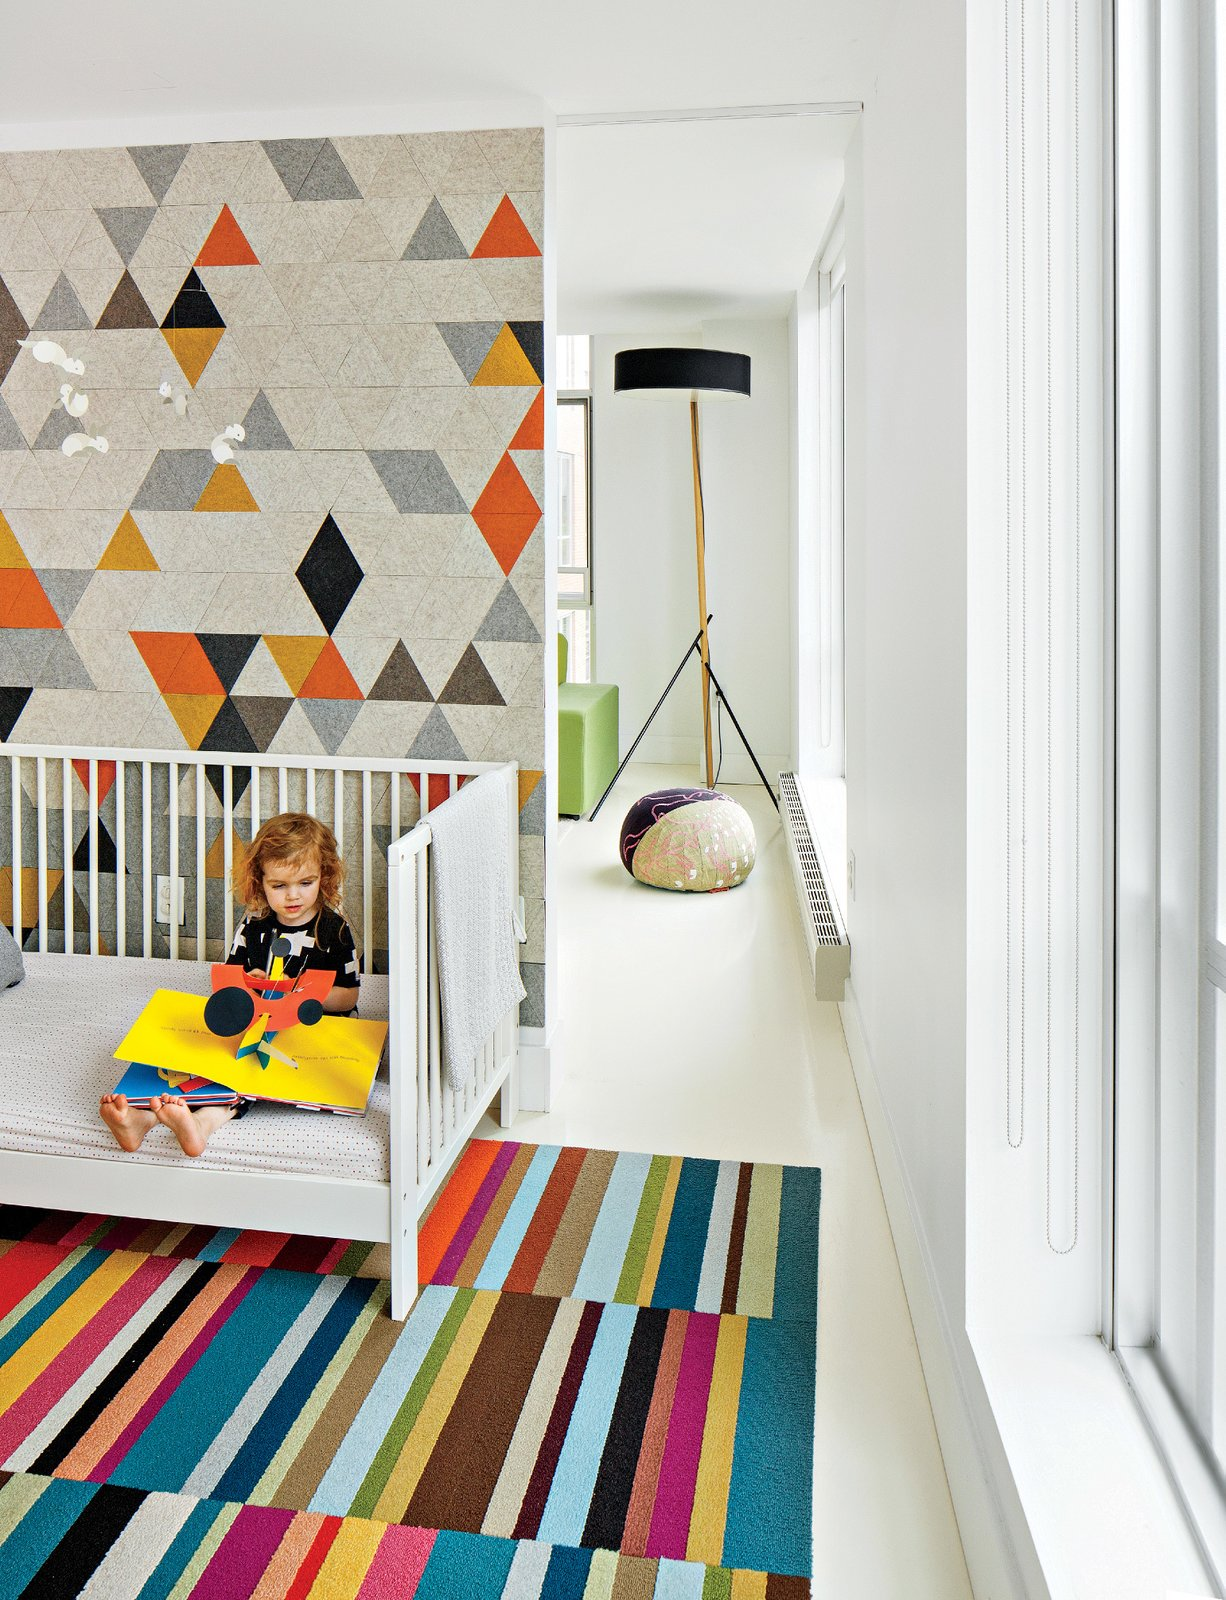 Kids Room, Bedroom Room Type, and Bed A bunny mobile by Flensted hangs over the crib, while the felt mural provides a soft and colorful backdrop. The Excel floor lamp in the living room is by Rich Brilliant Willing.  Photo 18 of 20 in 20 Cool Cribs for the Modern Baby from Boston Renovation Accents Minimalist White with Rich Felt Murals